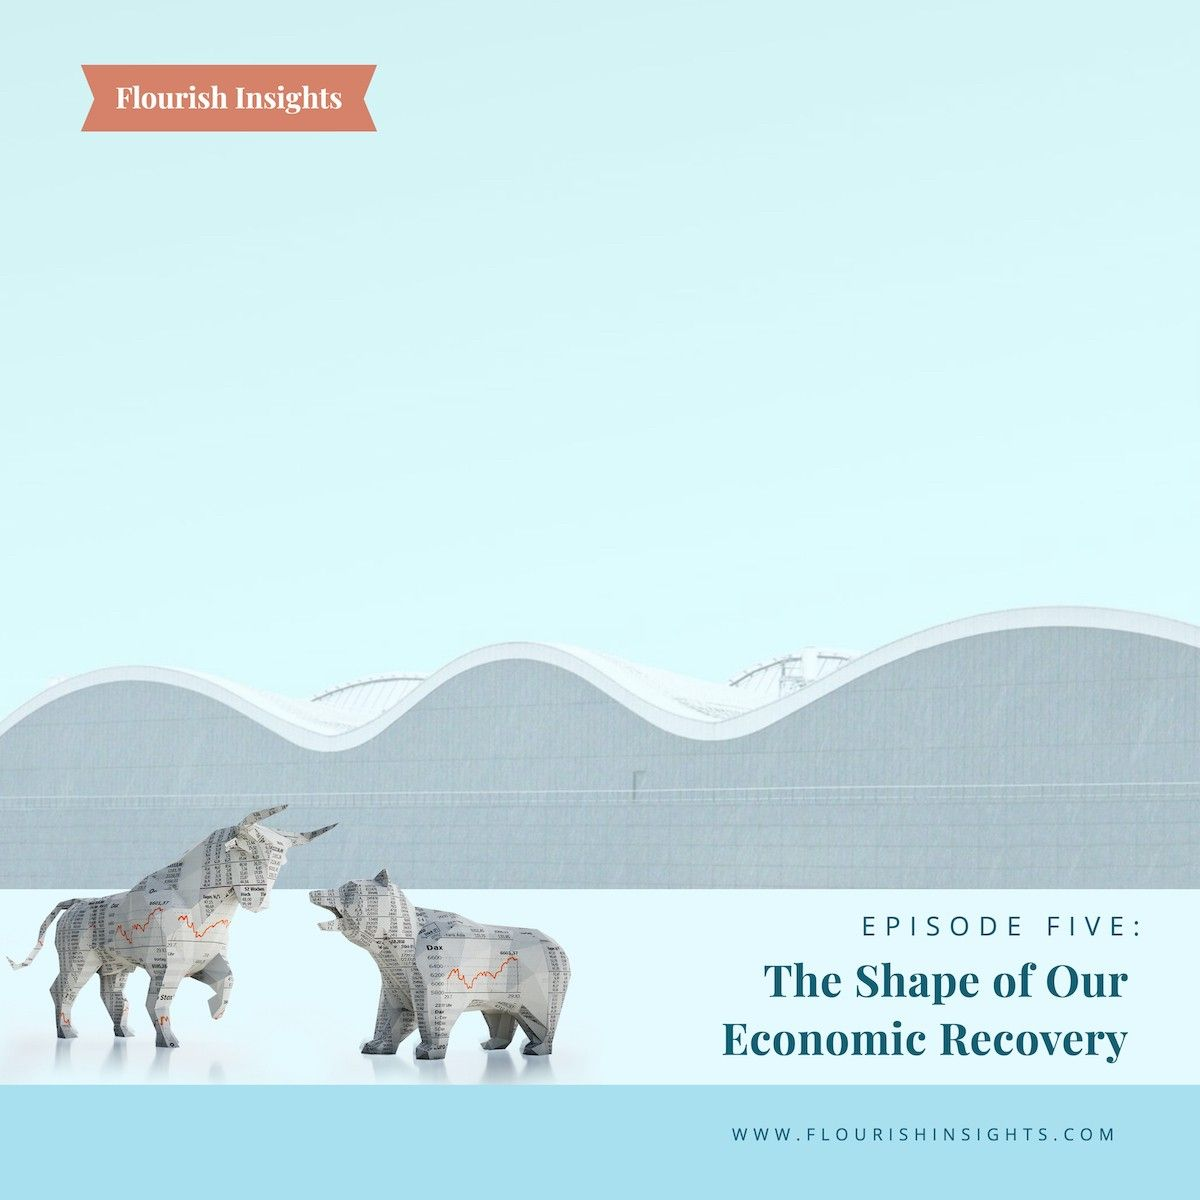 The Shape of Our Economic Recovery